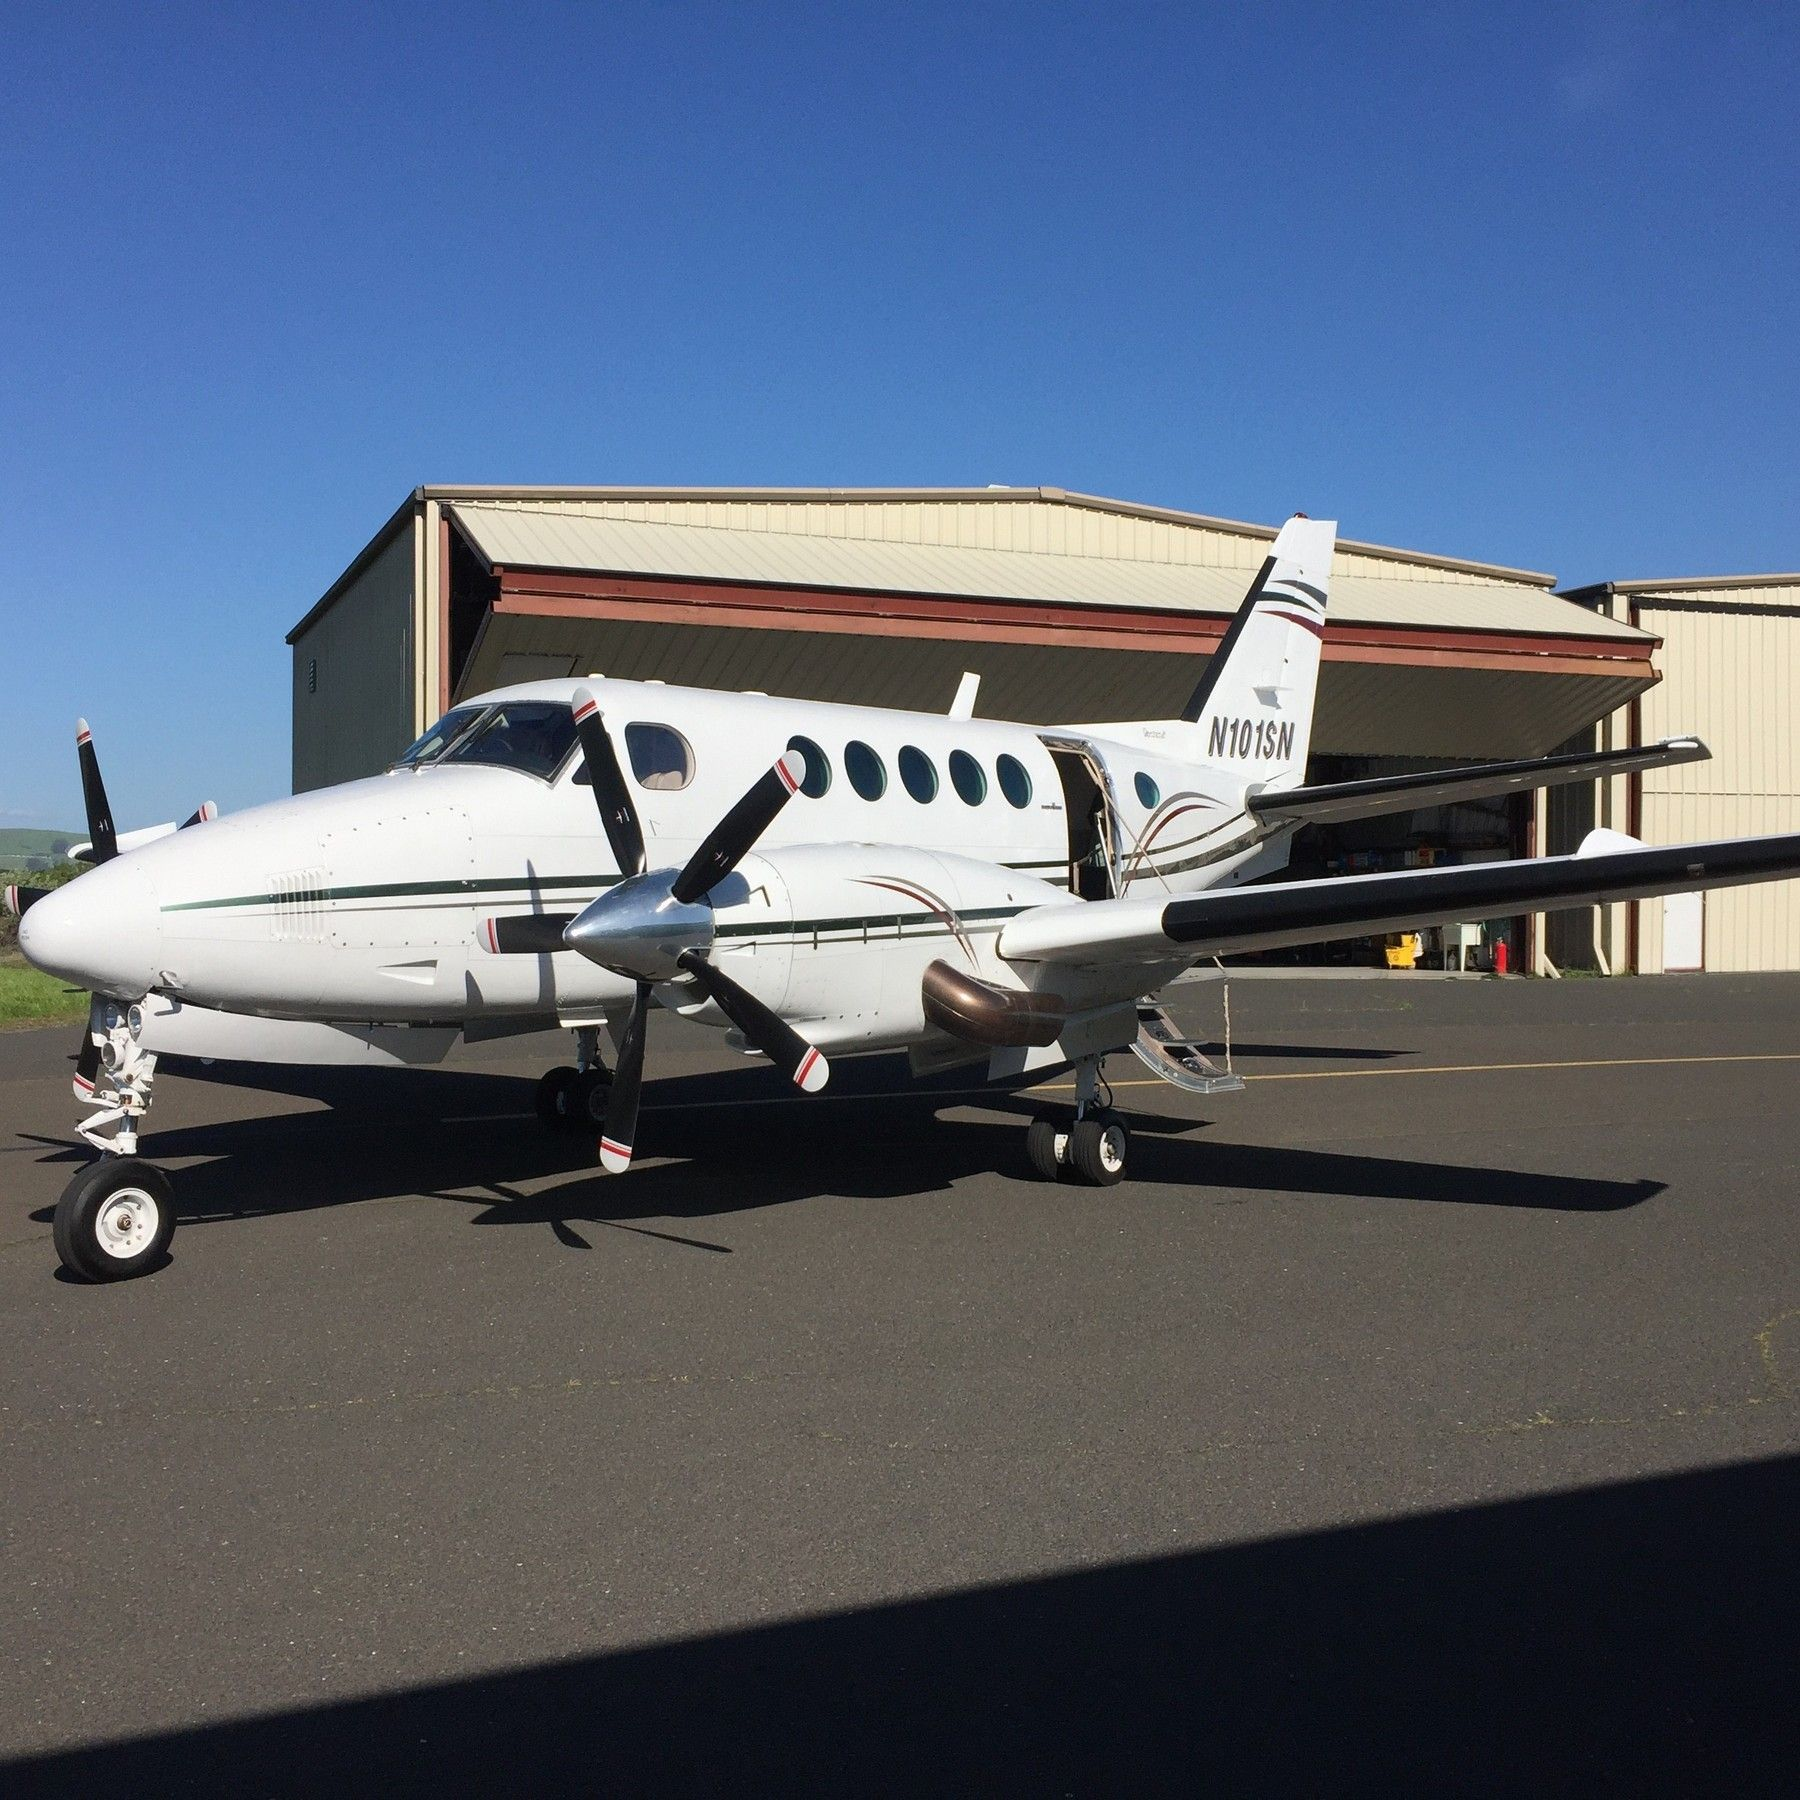 1981 Beechcraft King Air B100 for sale in Canada => www